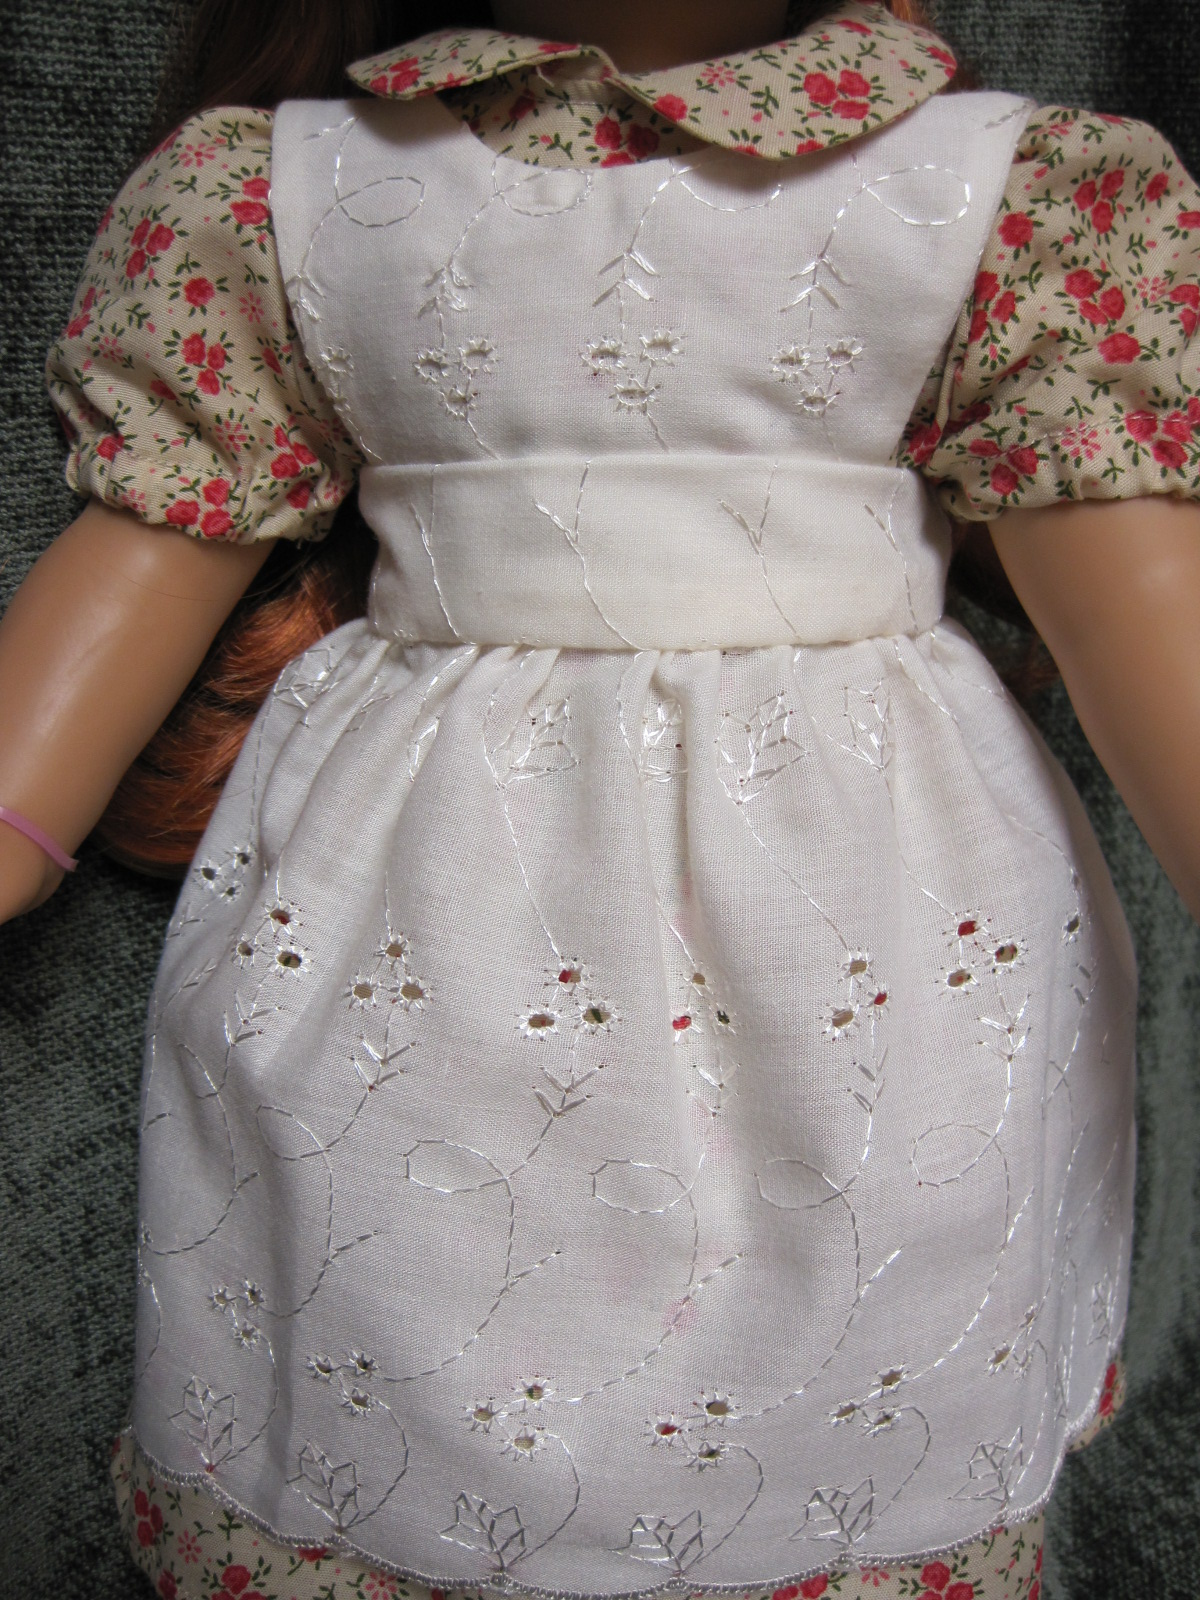 White lace apron ebay - Hailey Looks Absolutely Adorable In Her New Duds Above Is A Closer Pic Of The Apron Pinafore The Material Is Nice Quality And The